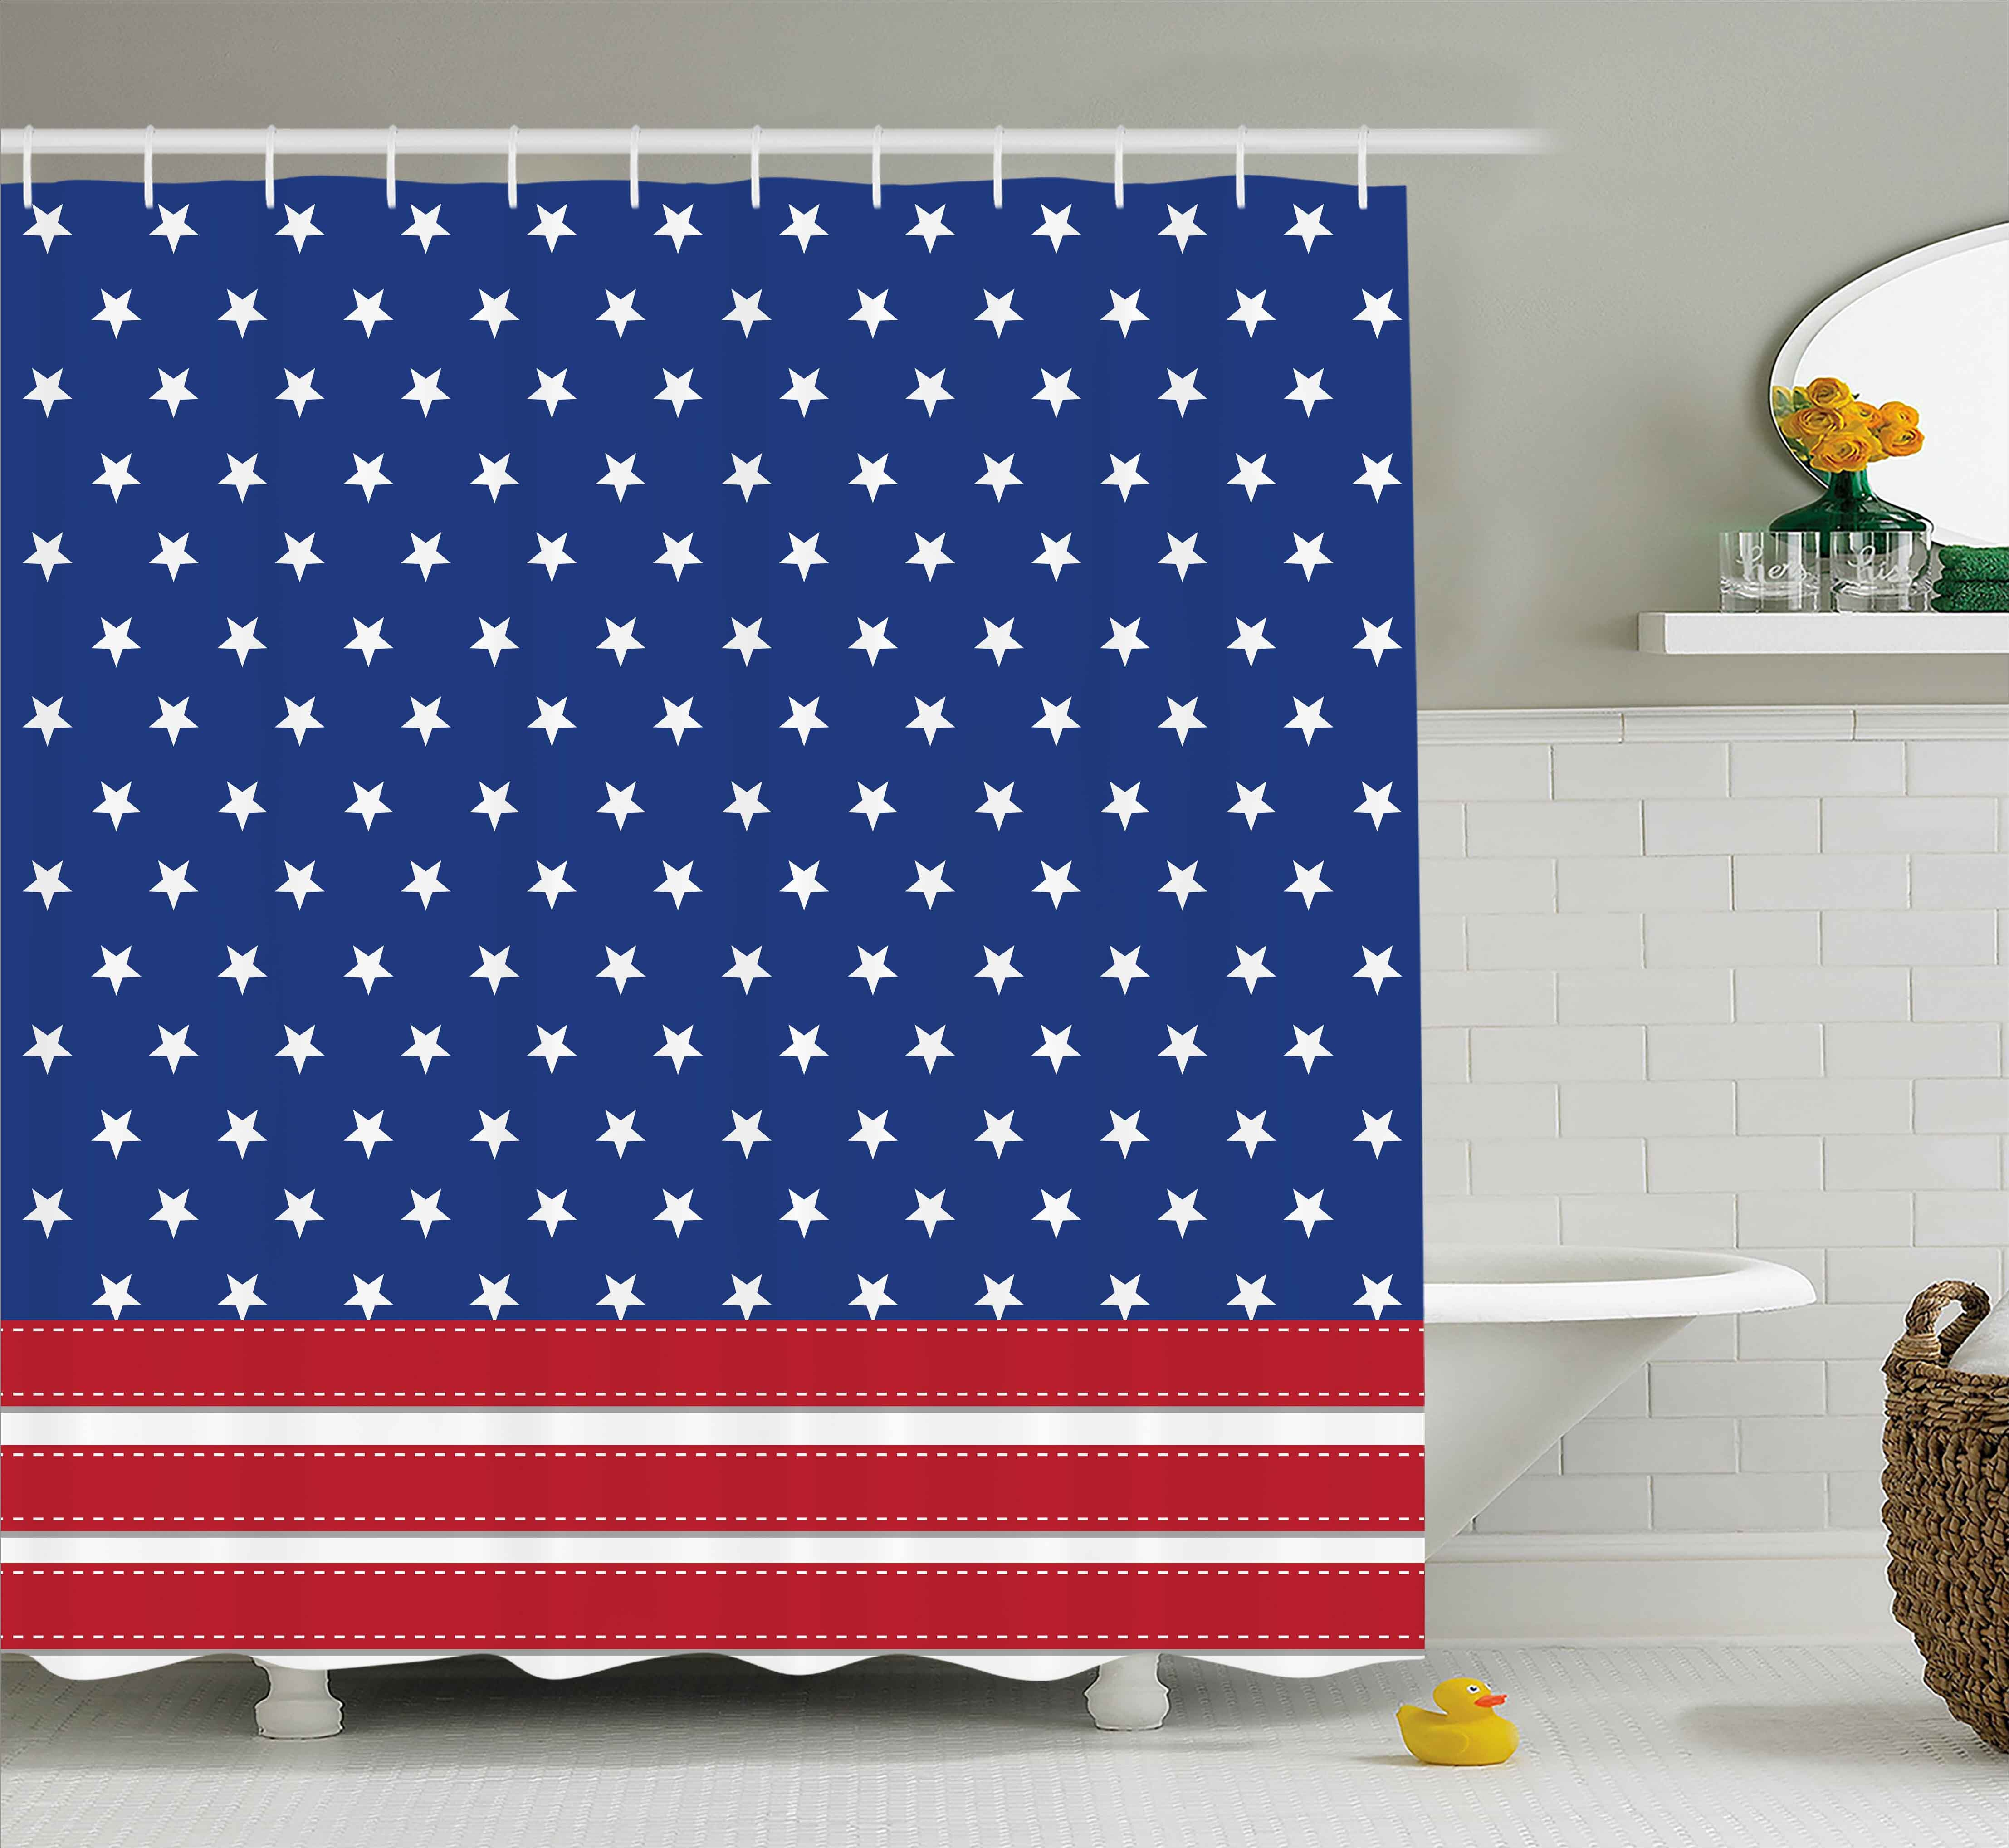 Blue Independence Day Shower Curtains Shower Liners You Ll Love In 2021 Wayfair